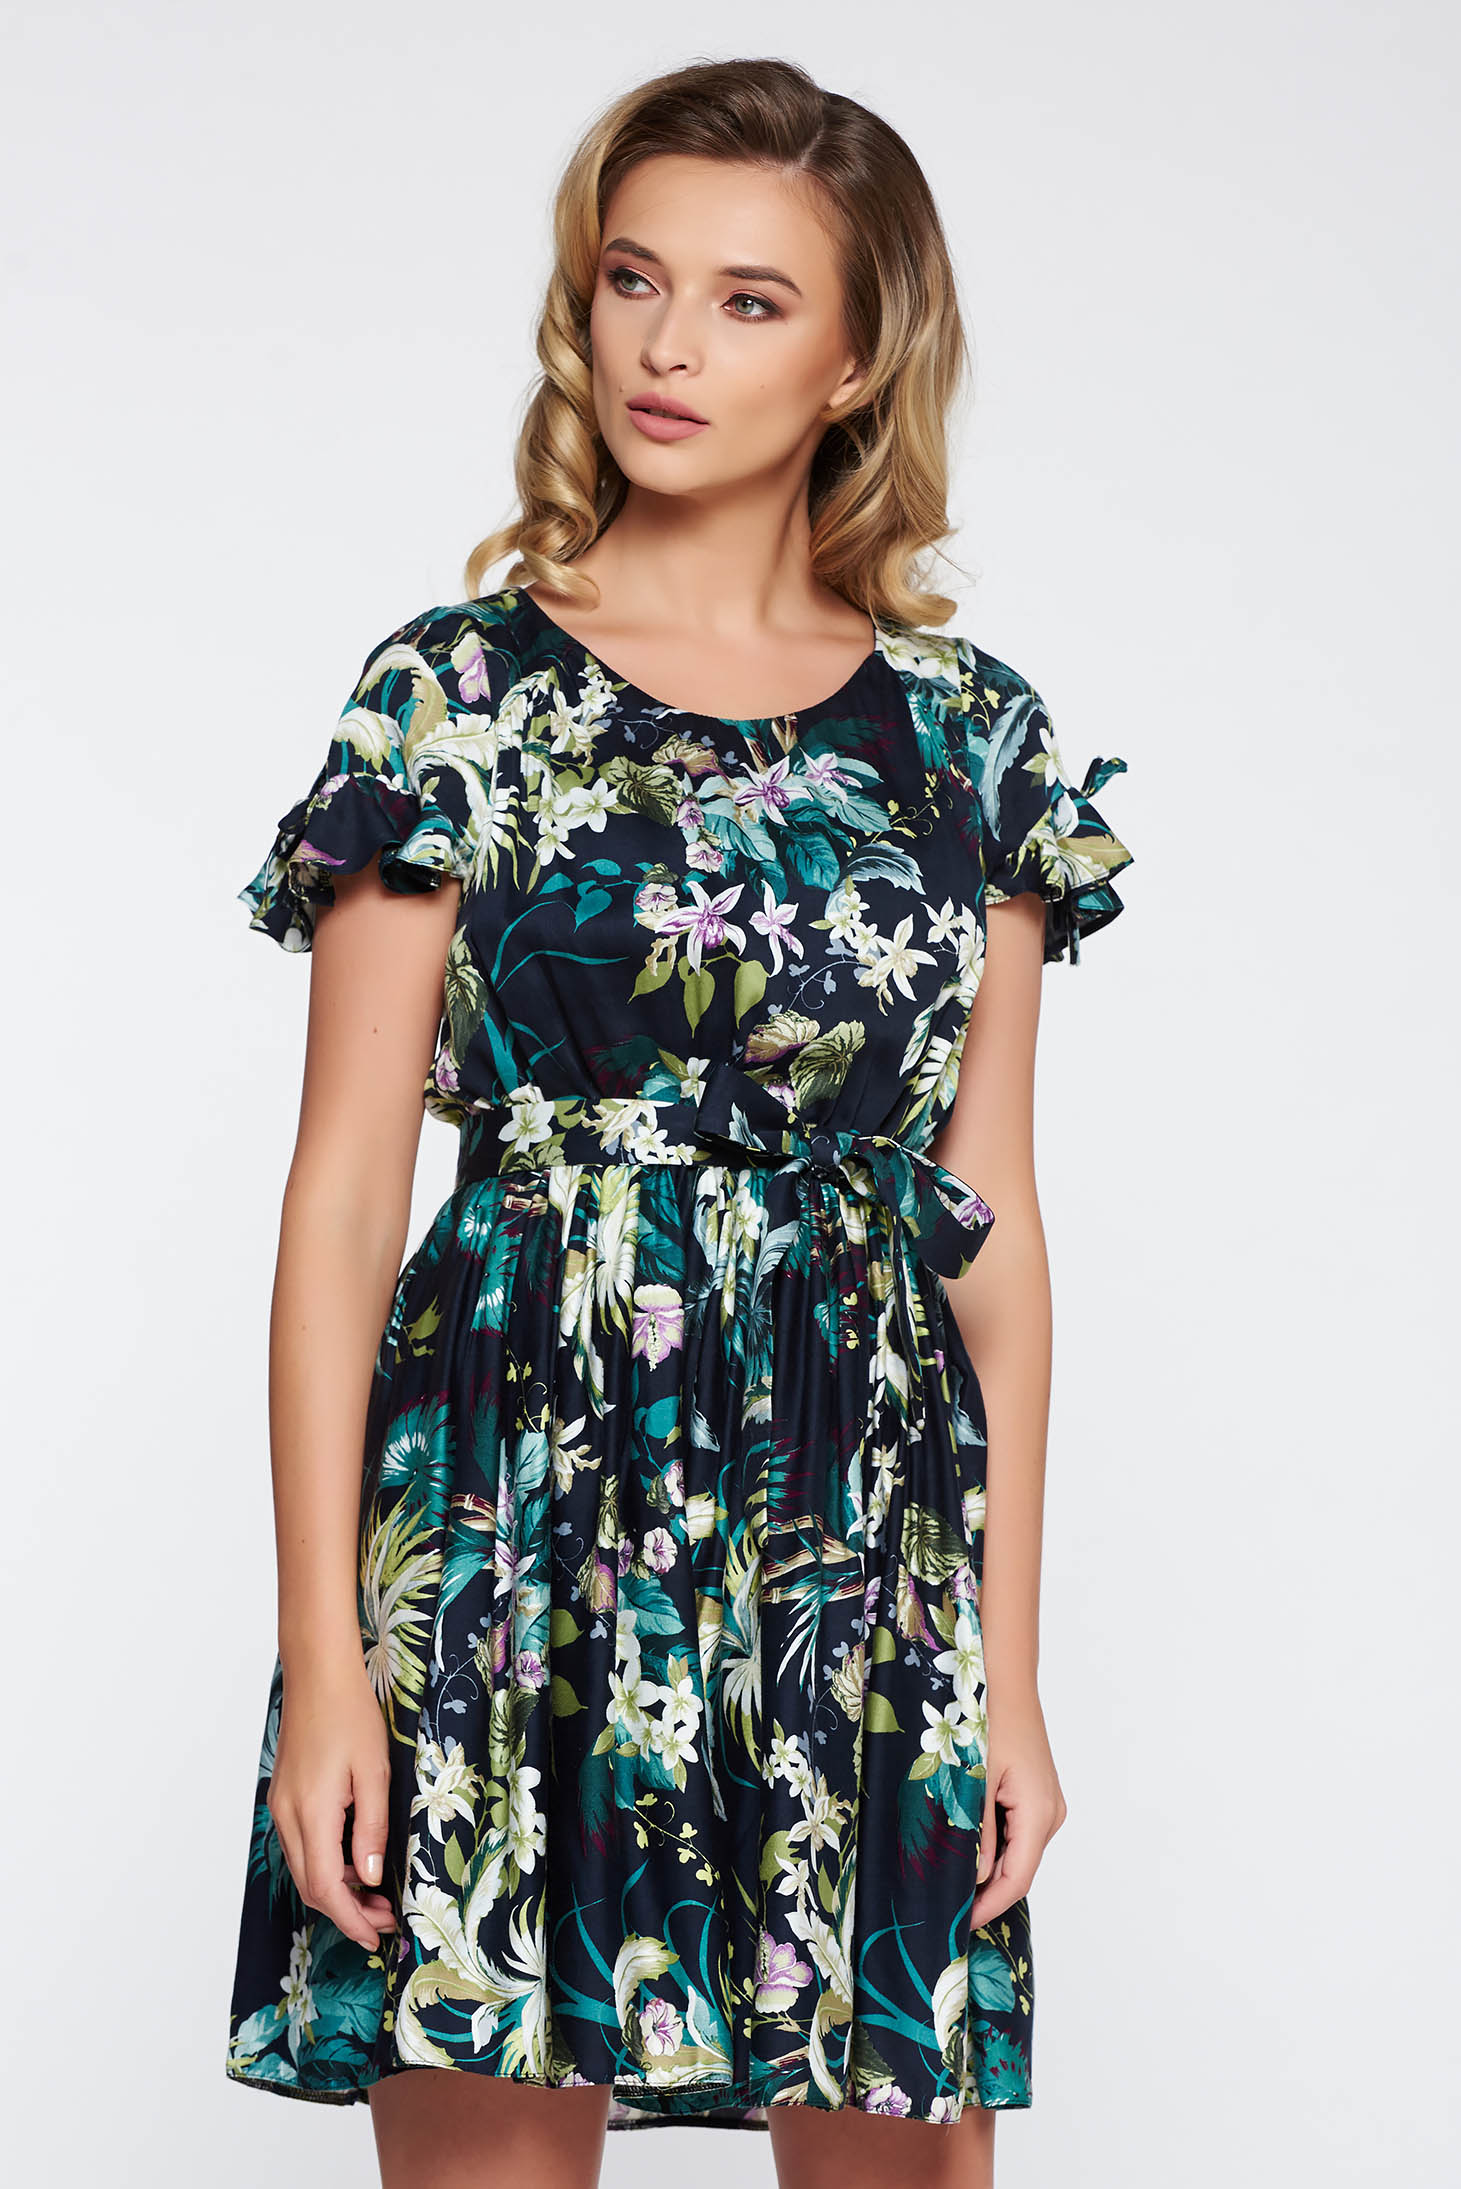 Green daily cloche dress thin fabric with elastic waist with ruffled sleeves